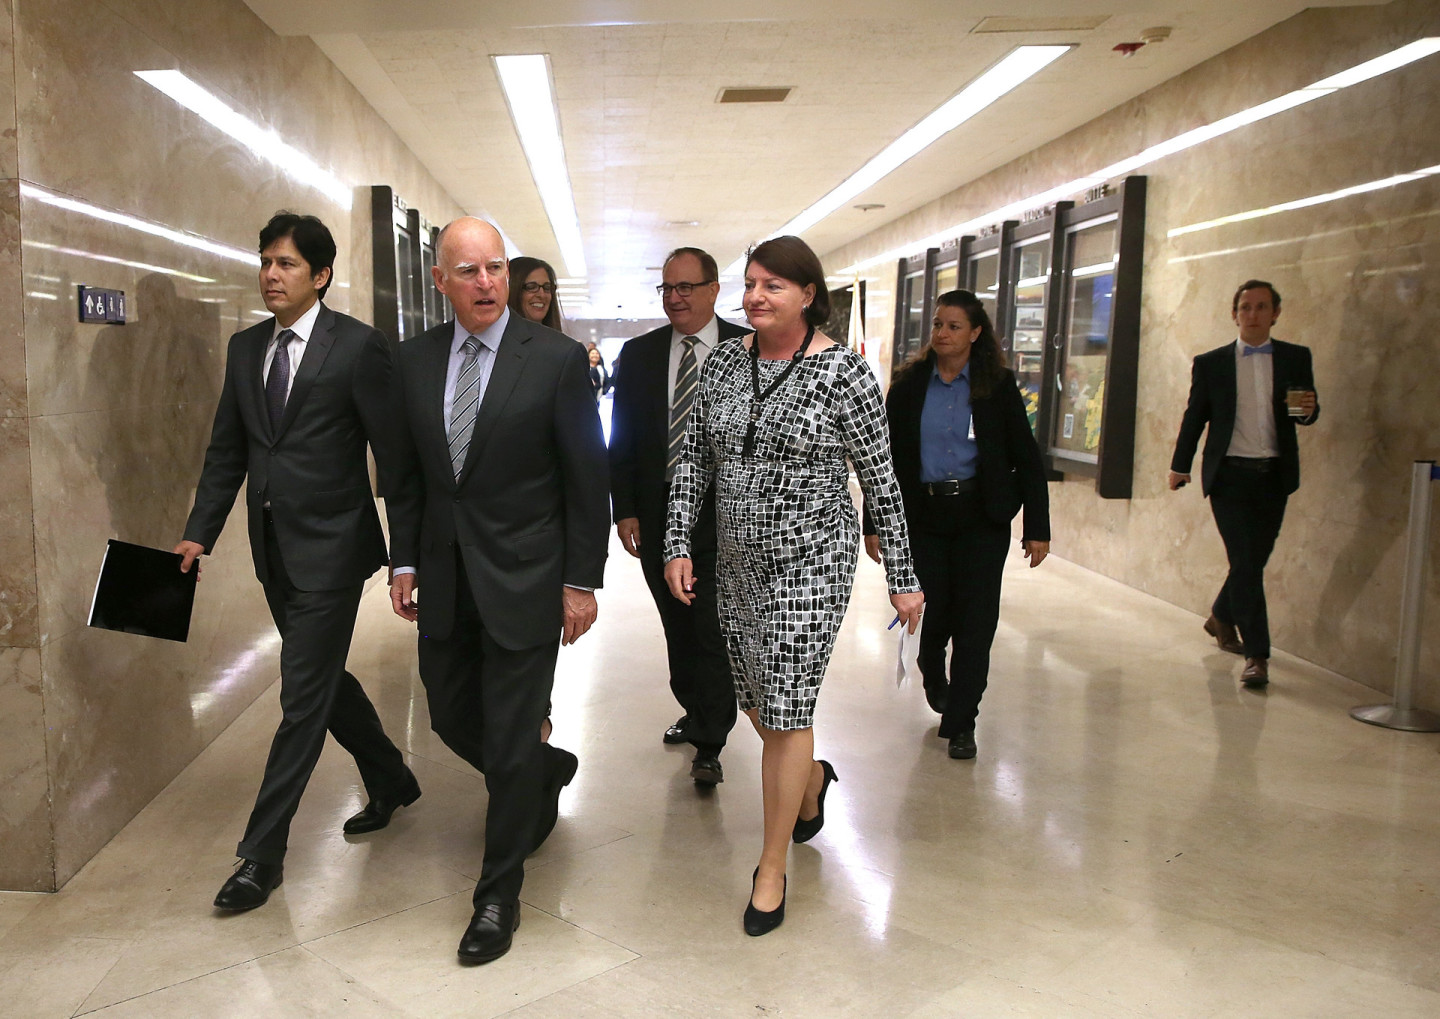 California Gov. Jerry Brown (C) walks with Senate President pro Tempore Kevin de León (L) and Assembly Speaker Toni Atkins (R) to a news conference on March 19, 2015.